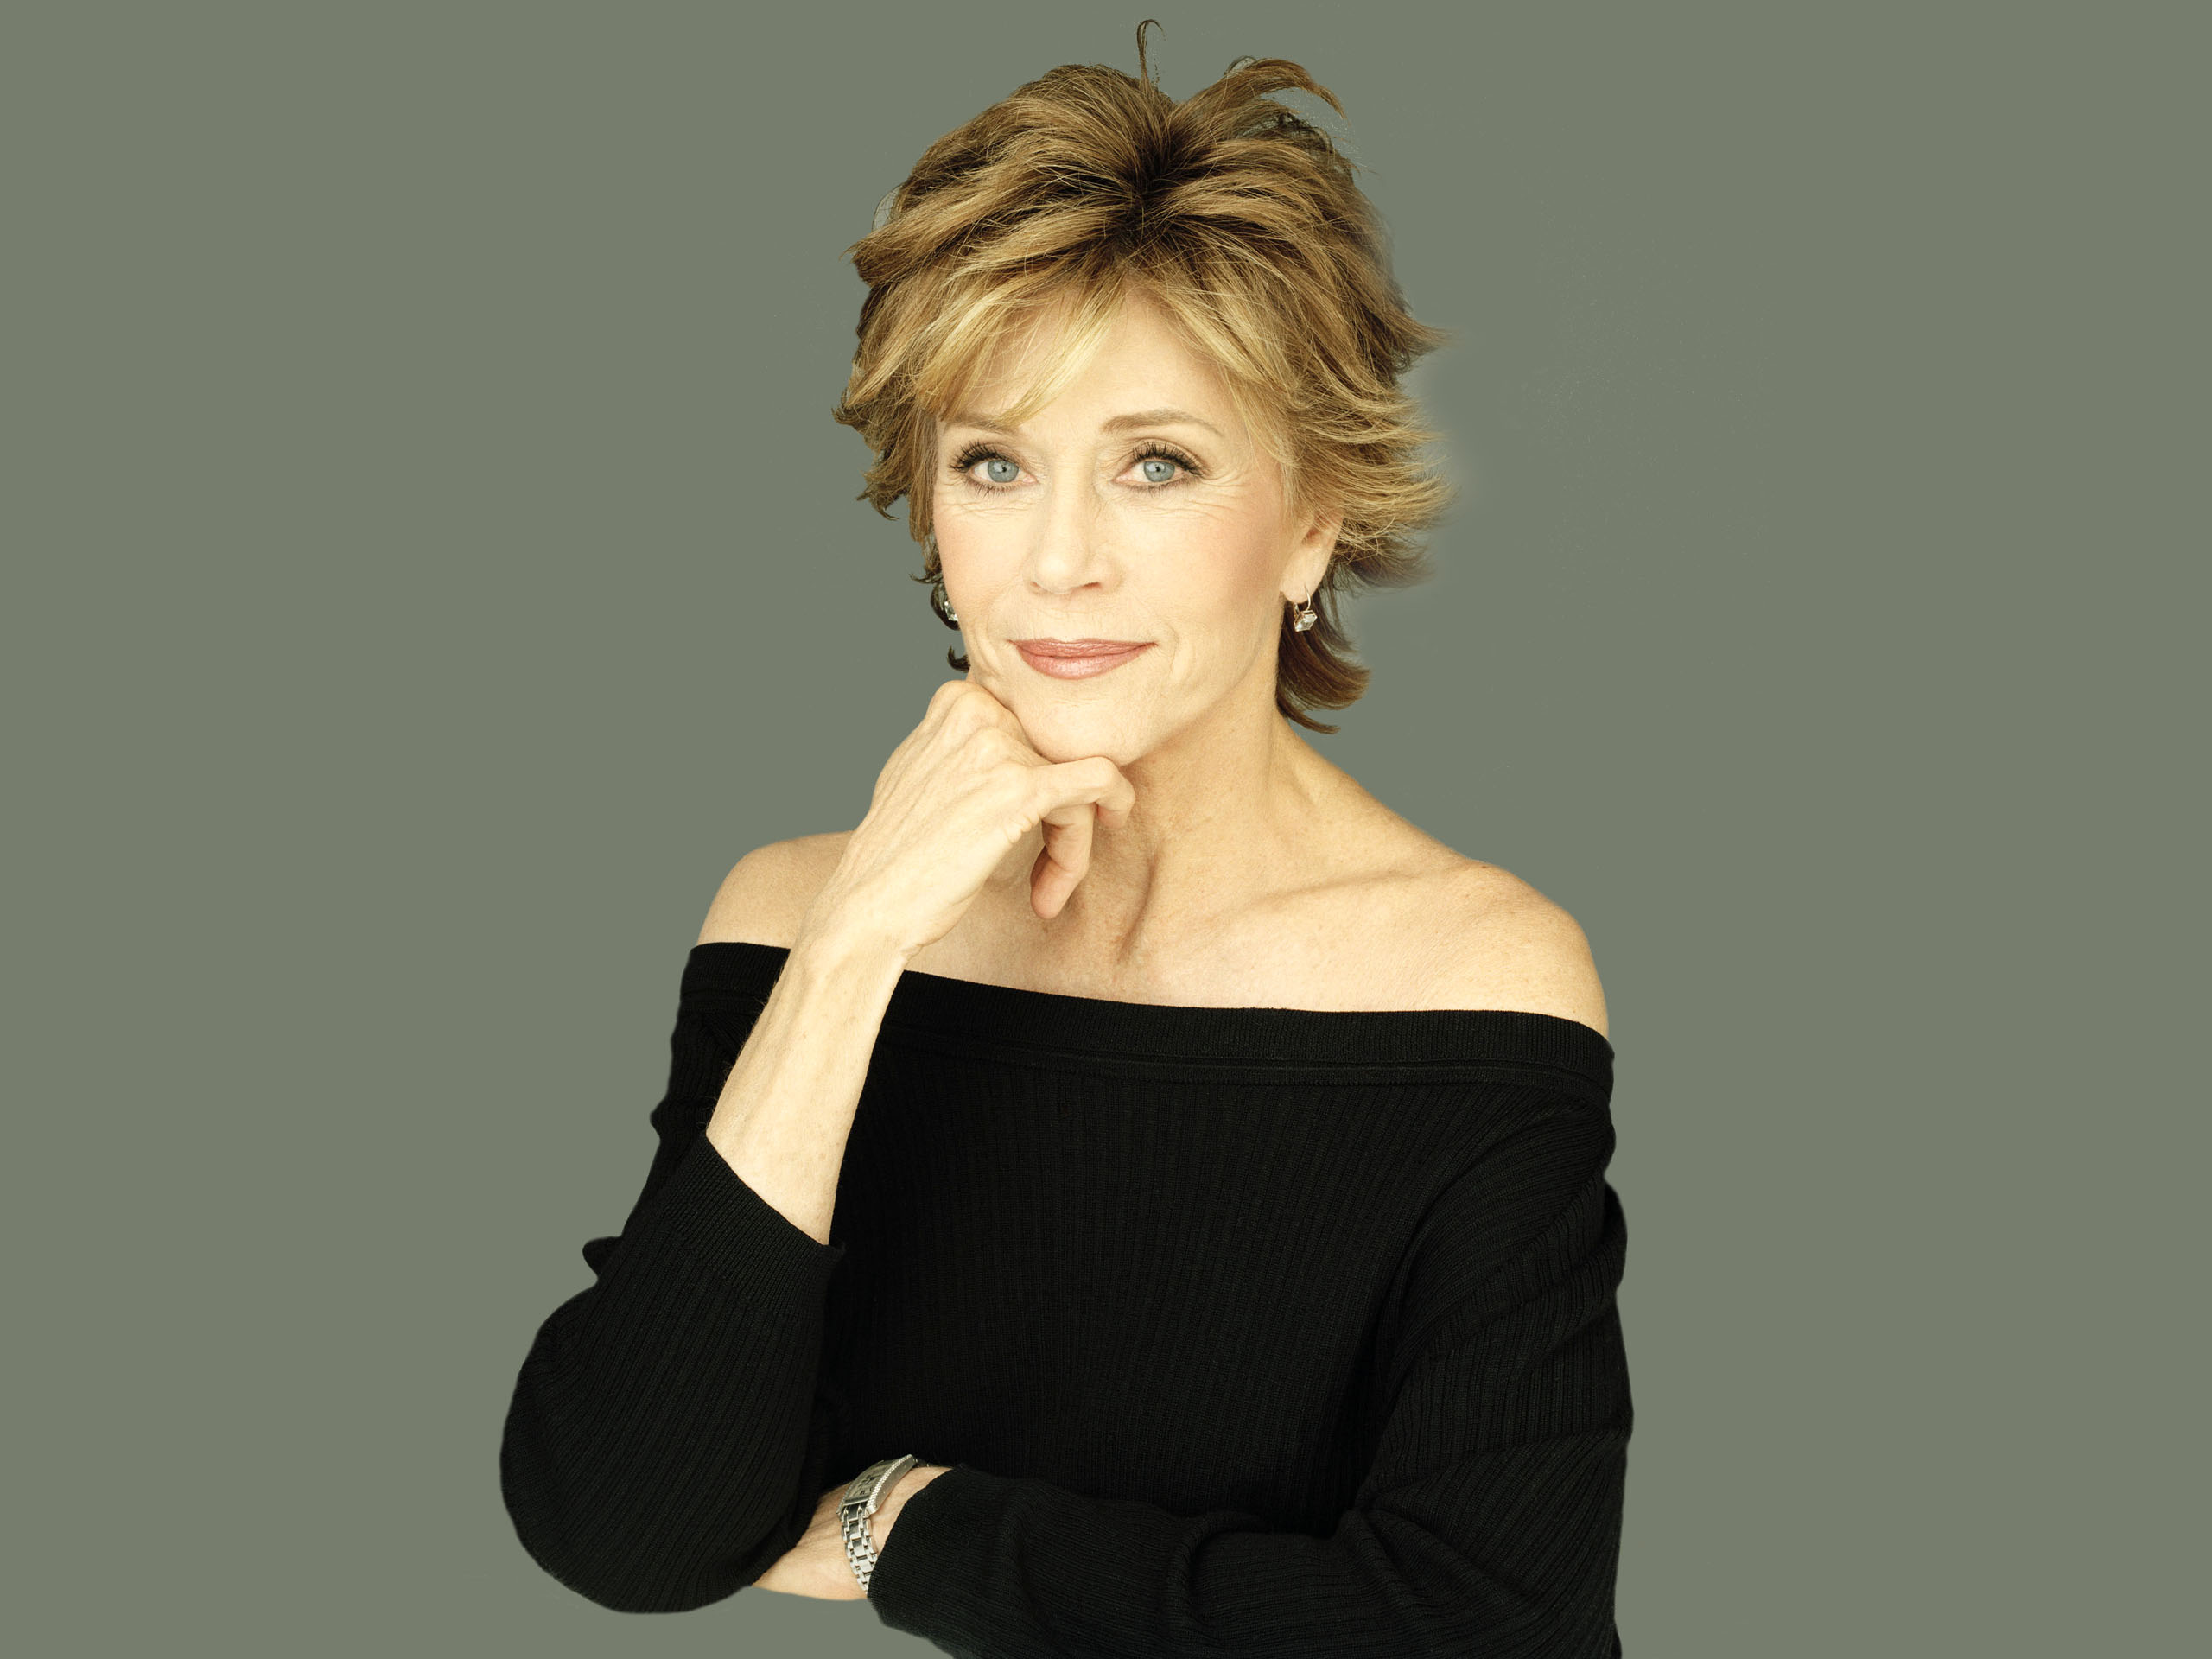 Jane Fonda hd wallpaper Wallpaper